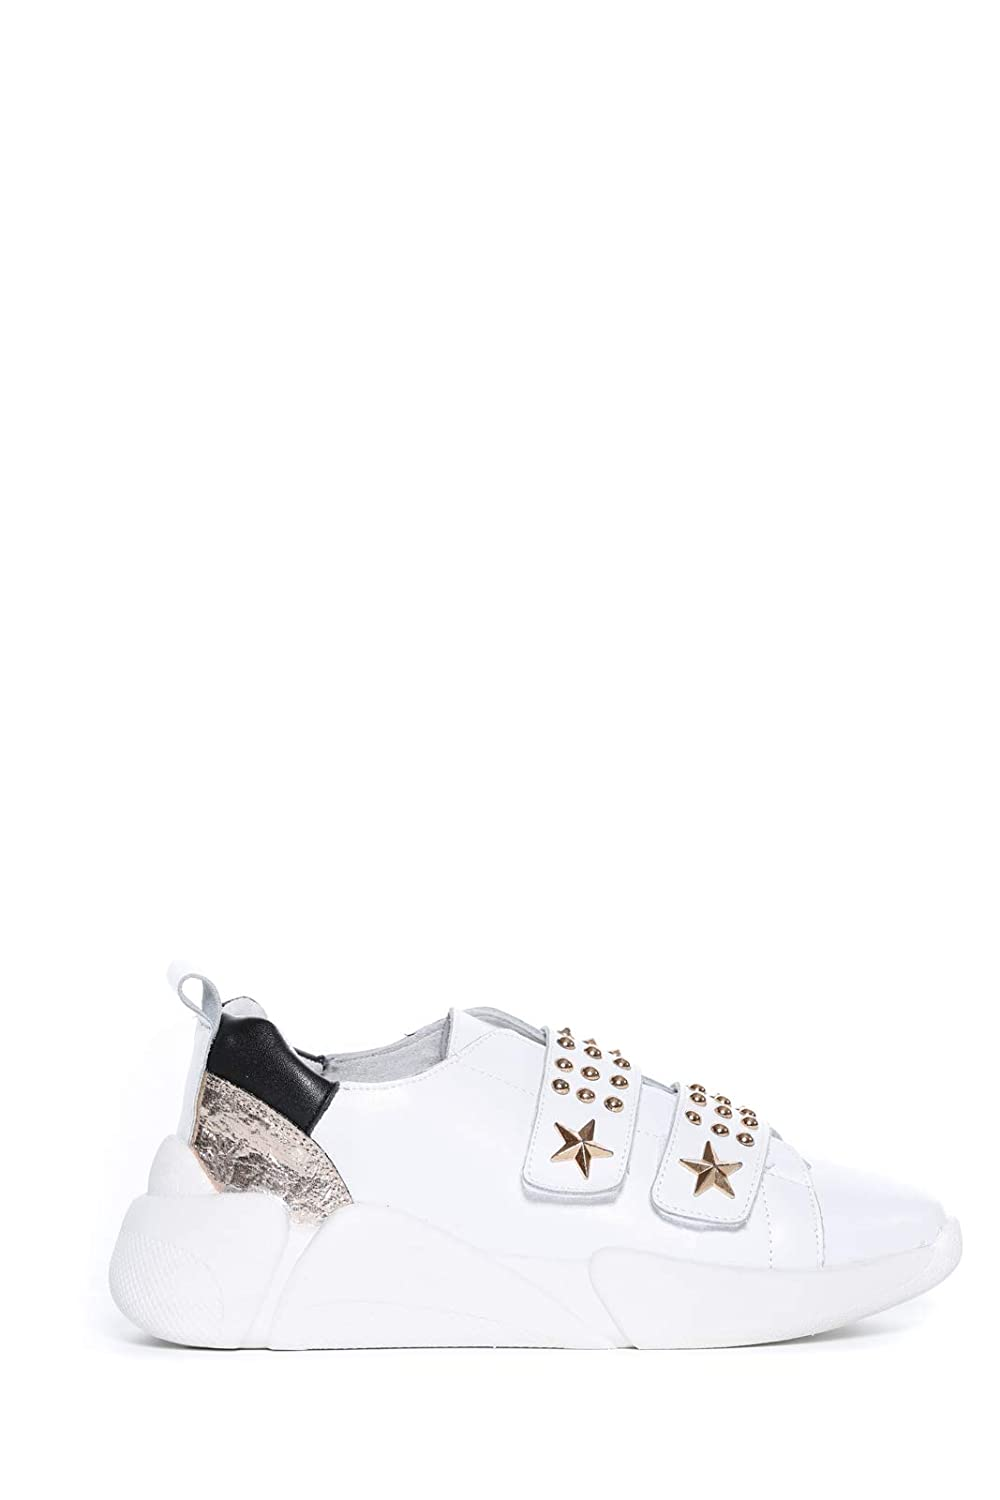 Colors of california Scarpe  Art Bianco Donna Autunno Inverno Art  SPEED05 G-WHI A18 - b3dc9f